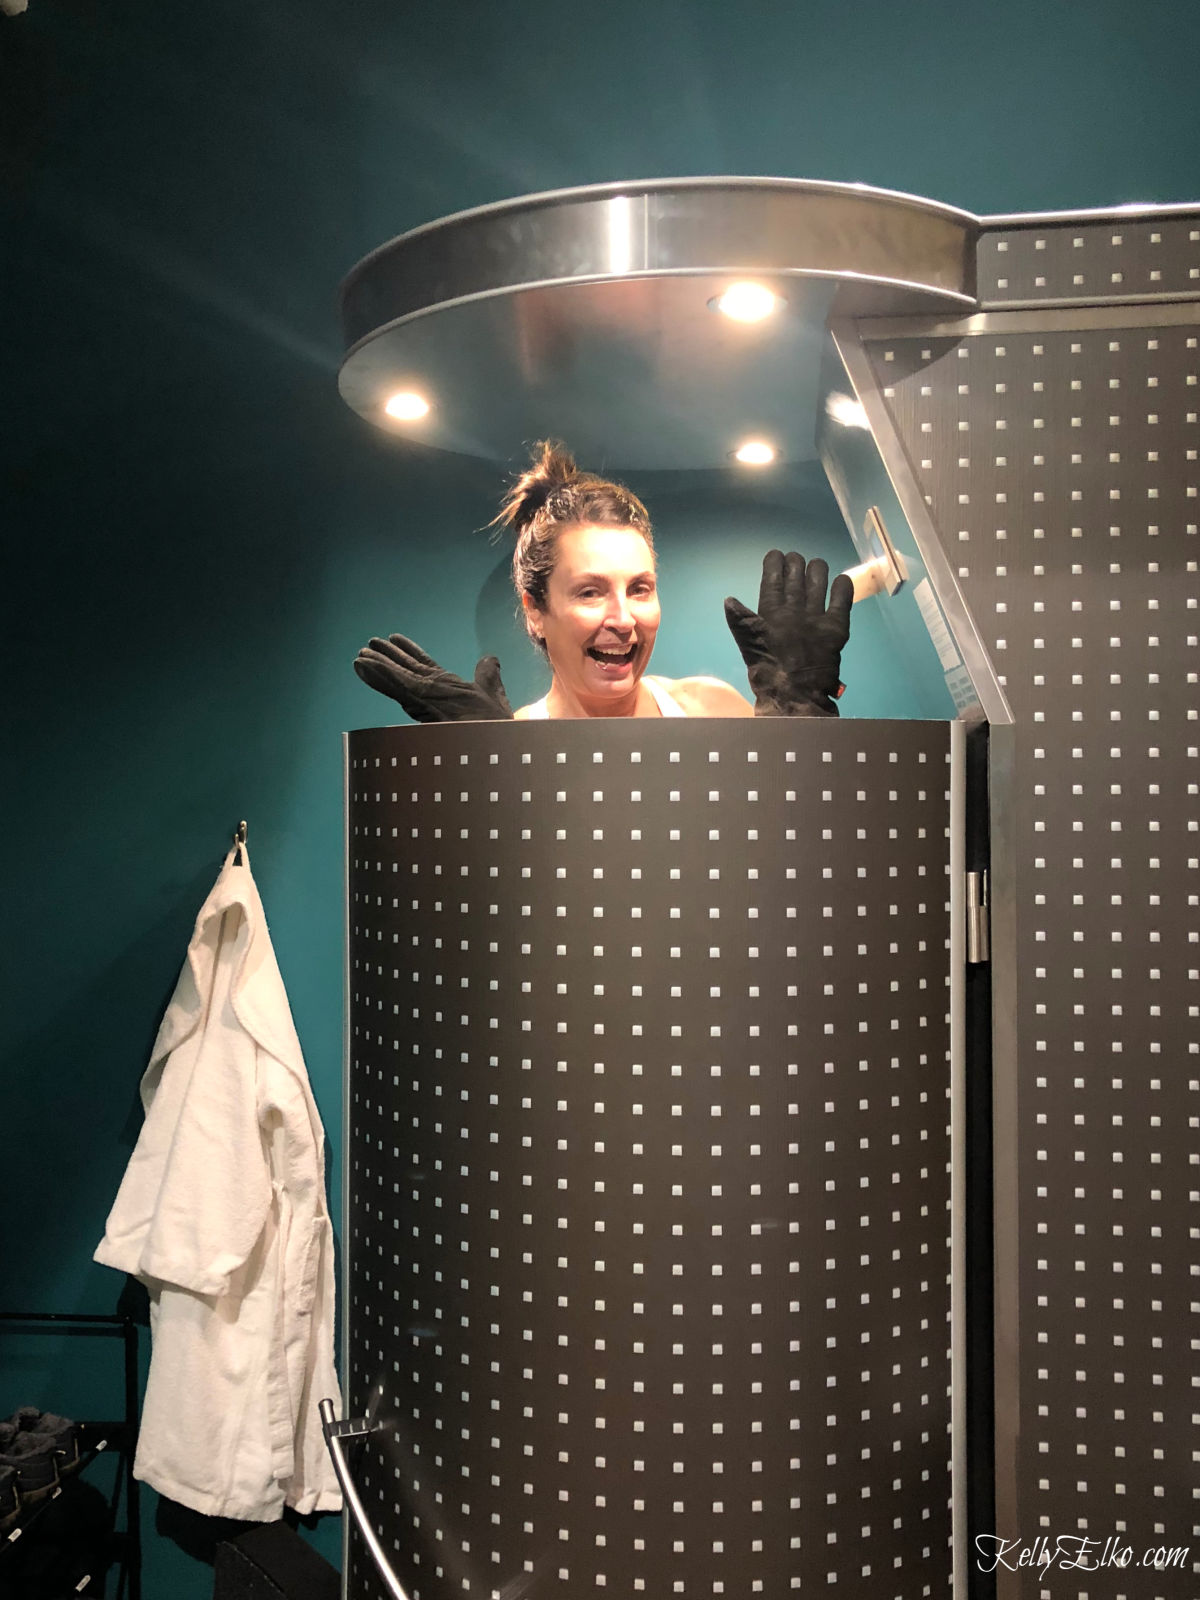 52 Weeks of Yes! Join Kelly in the cryotherapy chamber to see if she can handle the cold! kellyelko.com #52weeksofyes #cryotherapy #selfcare